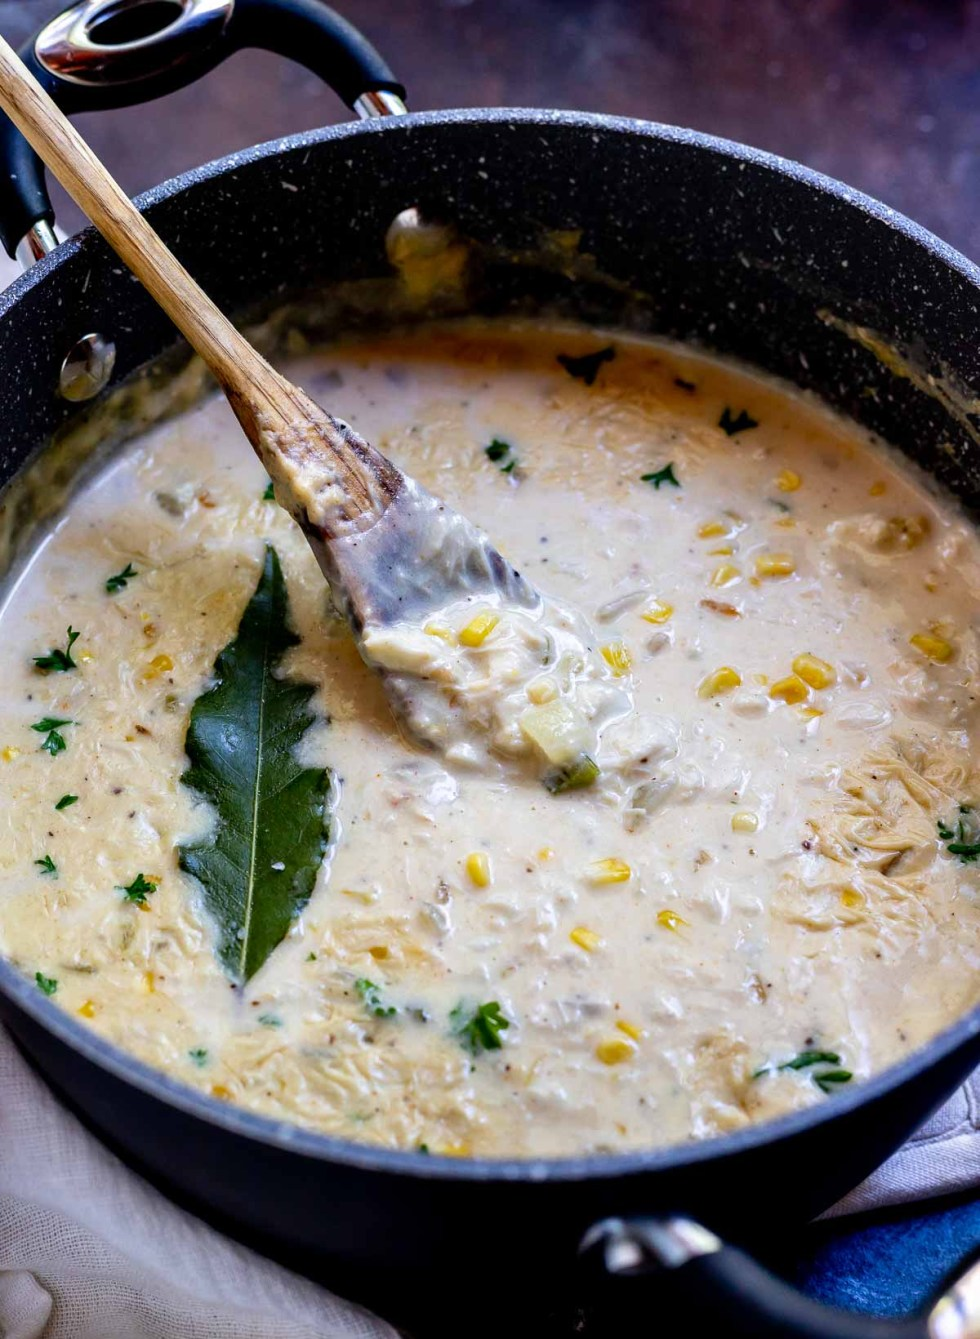 crab chowder in pot with wooden spoon